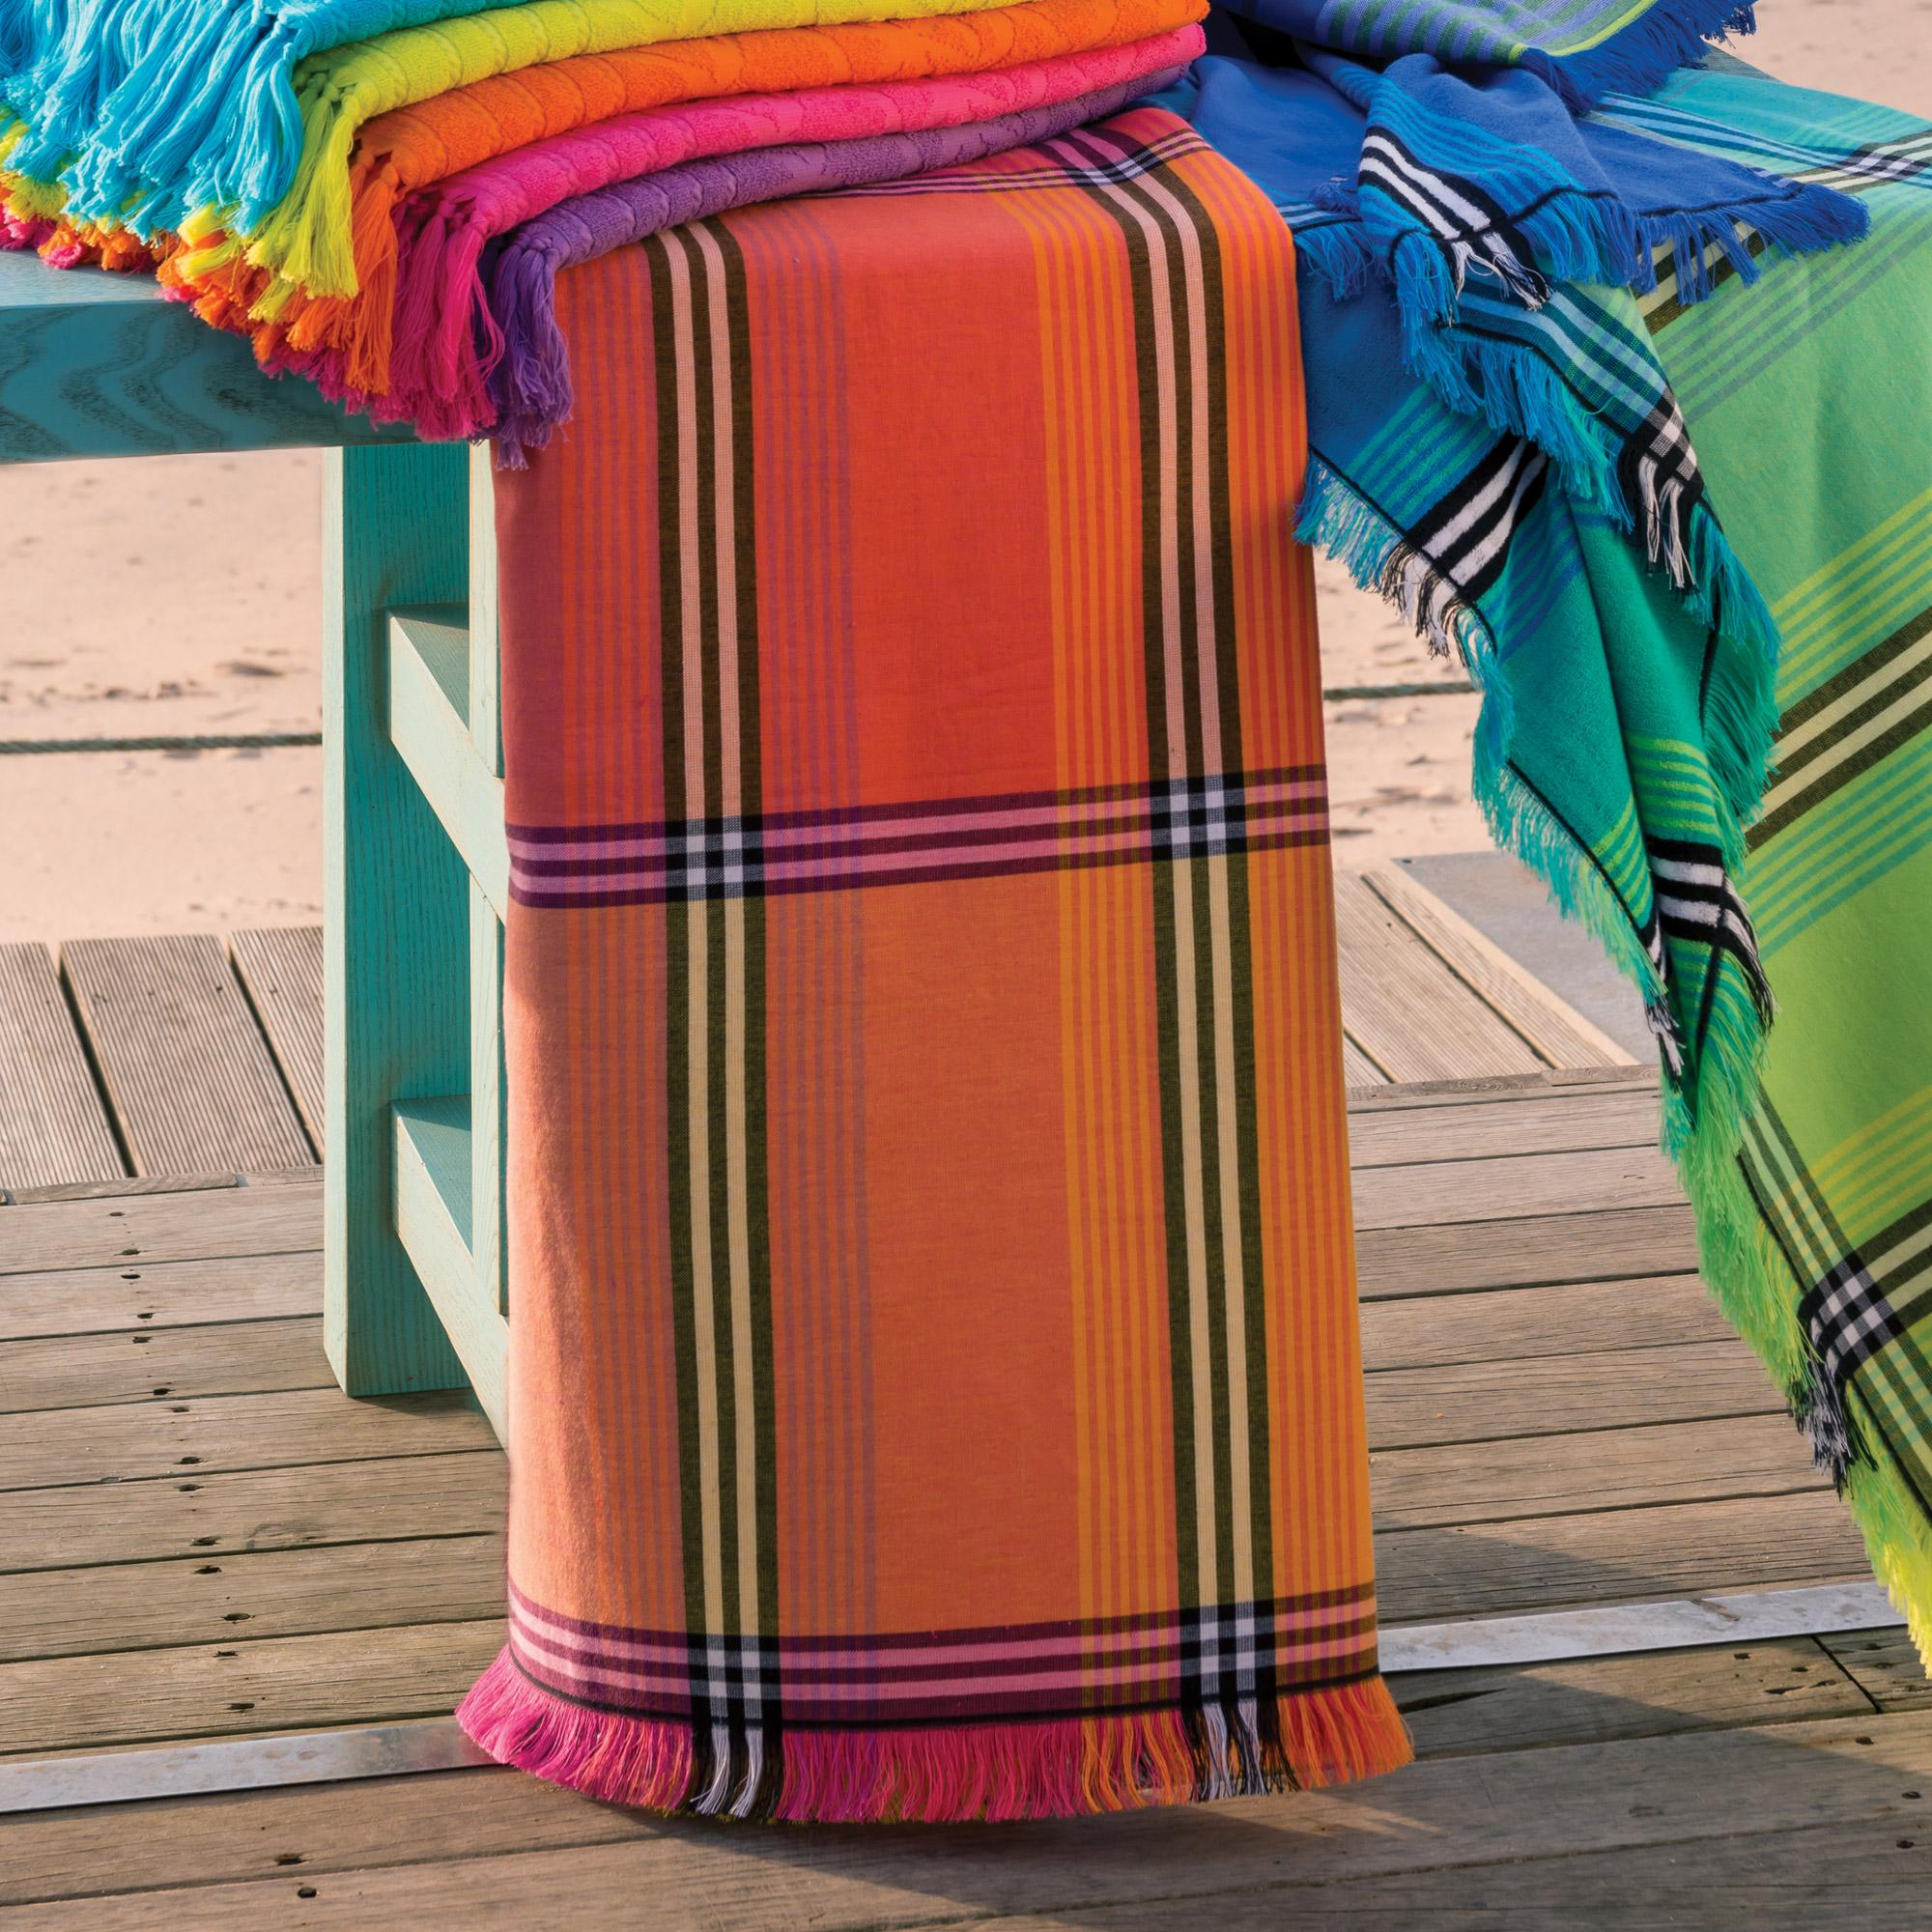 drap de plage fouta 100x180 cm 100 coton 270 g m2 vallevo orange d grad avec l ebay. Black Bedroom Furniture Sets. Home Design Ideas